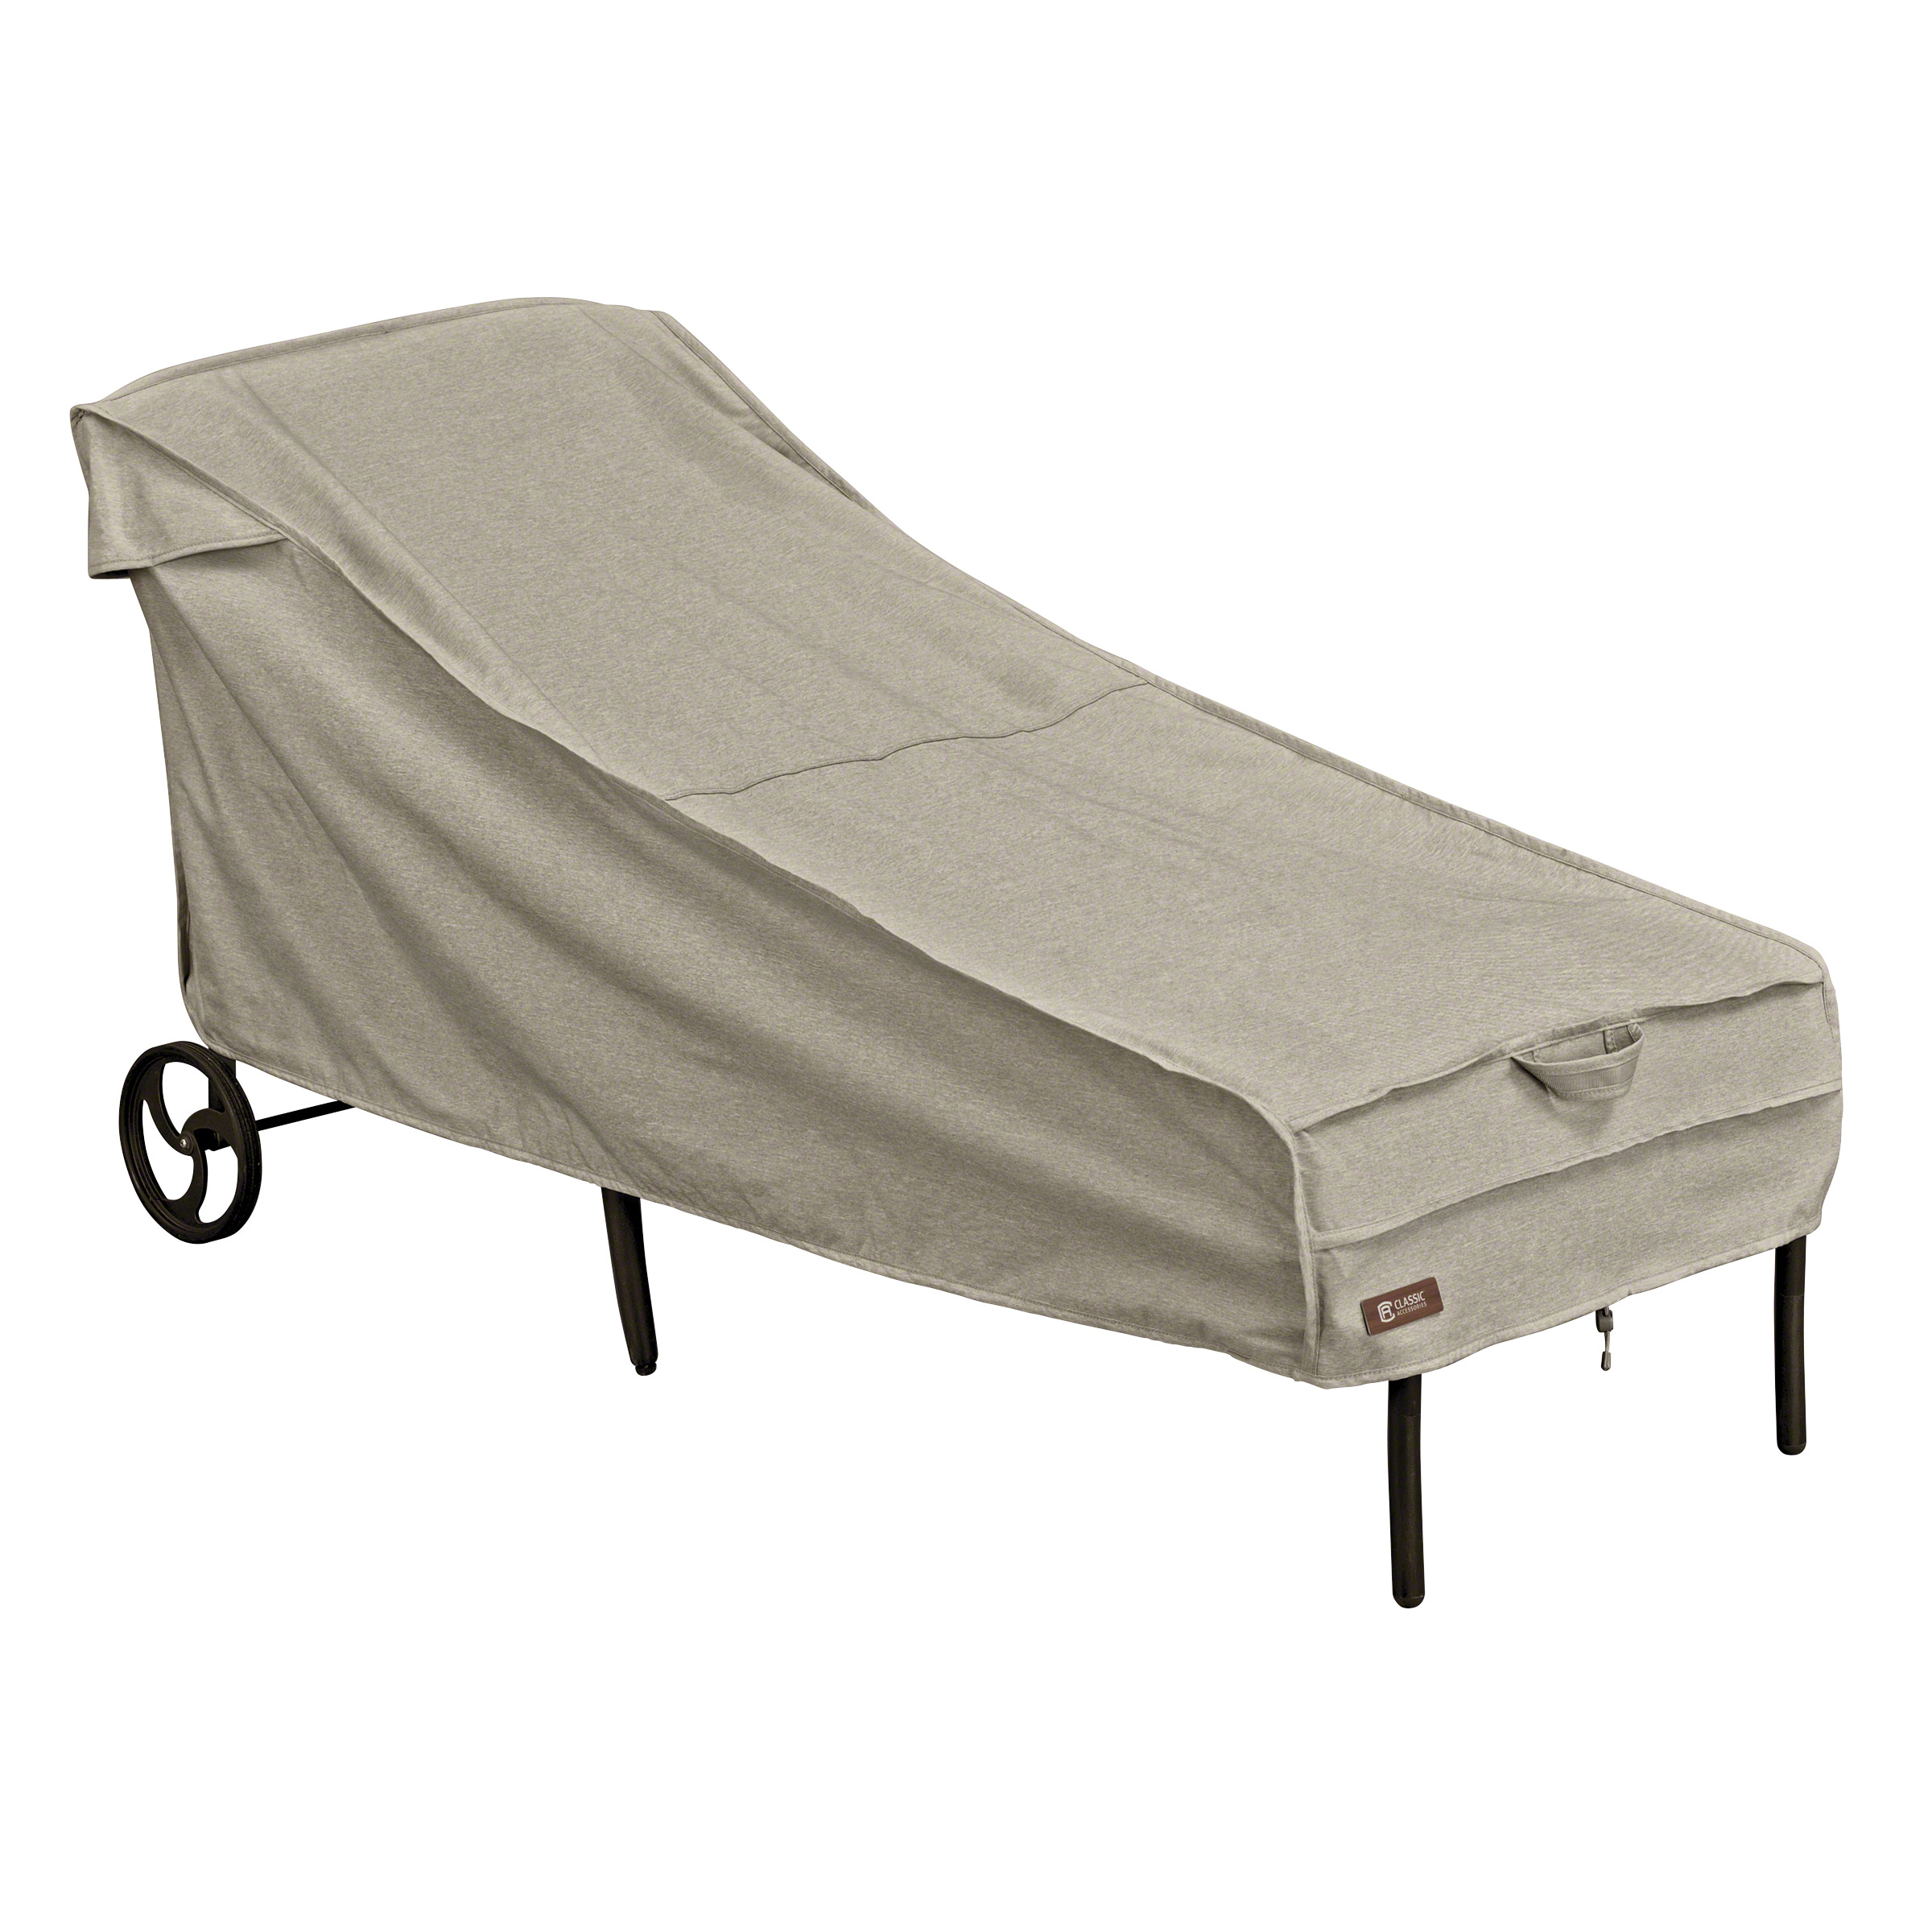 bed bath and beyond lounge chair cover swivel on wheels classic accessories montlake patio chaise